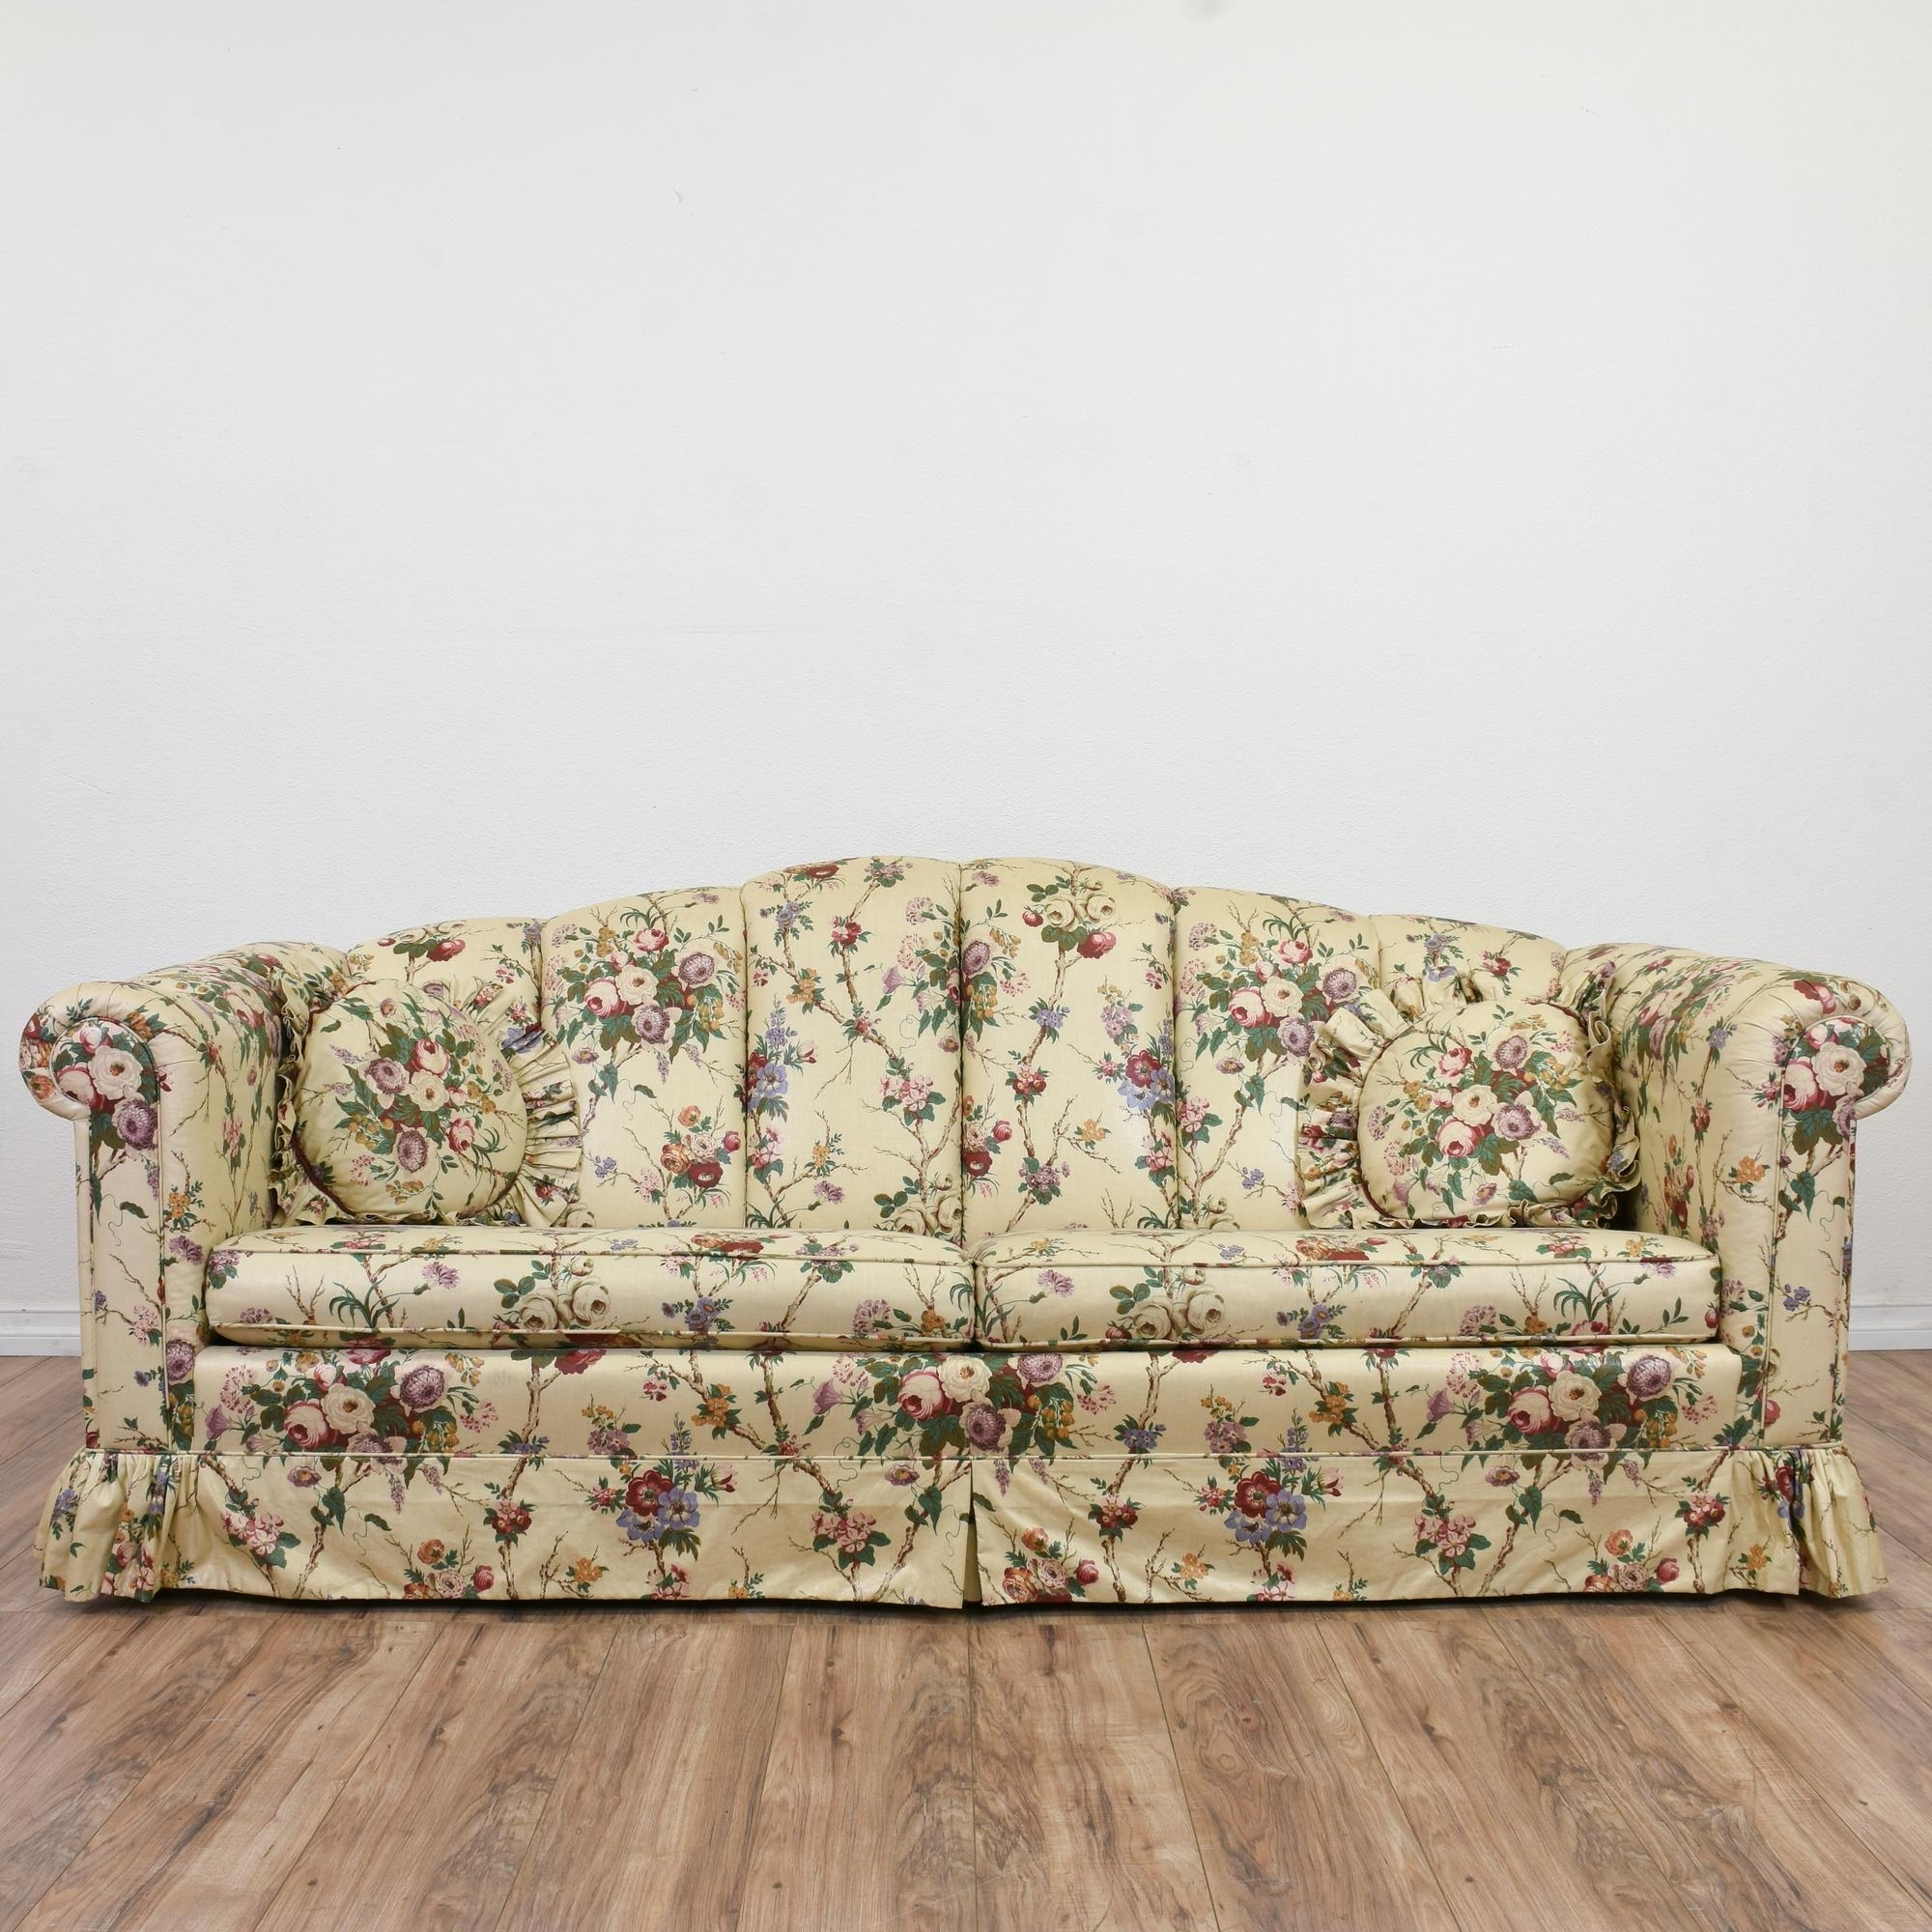 Chintz Sofas Pertaining To Famous This Sofa Is Upholstered In A Durable Off White Beige, Pink And (View 5 of 20)